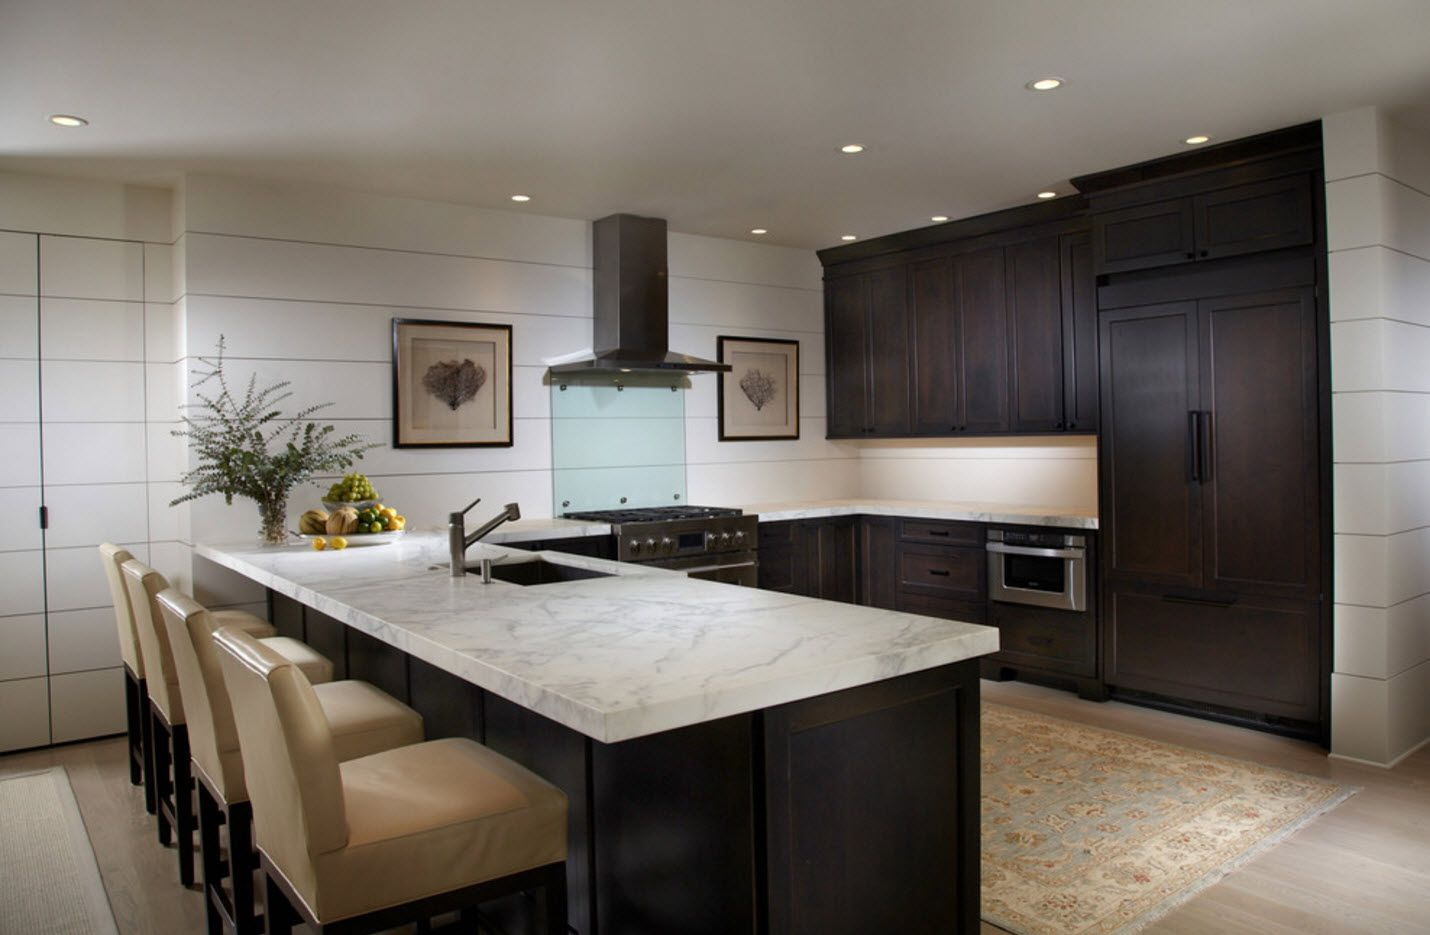 Dark furniture ensenble for modern large kitchen